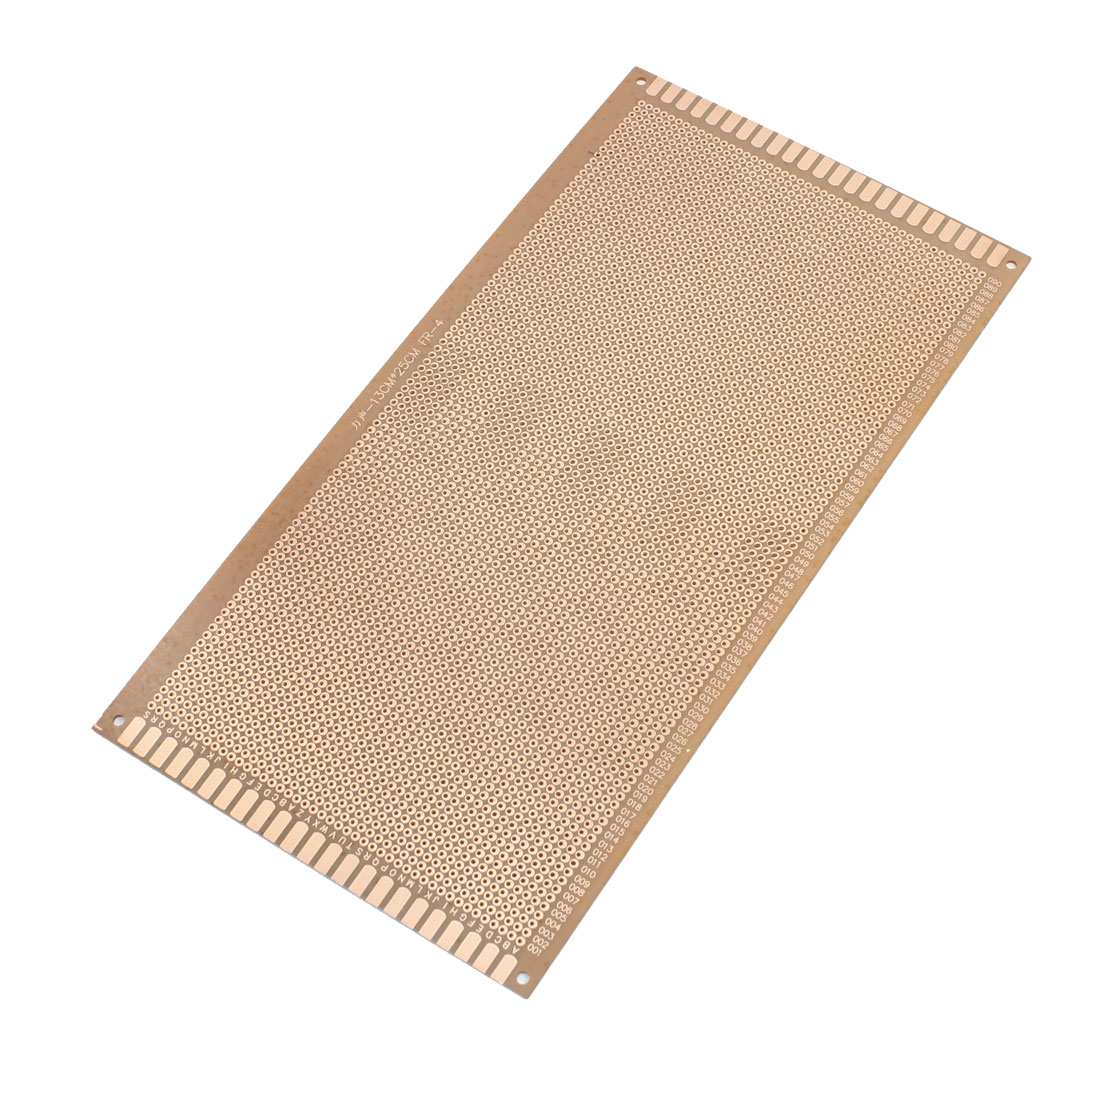 130x250mm Single Side Copper Coated Brown Printed Circuit Board Stripboard